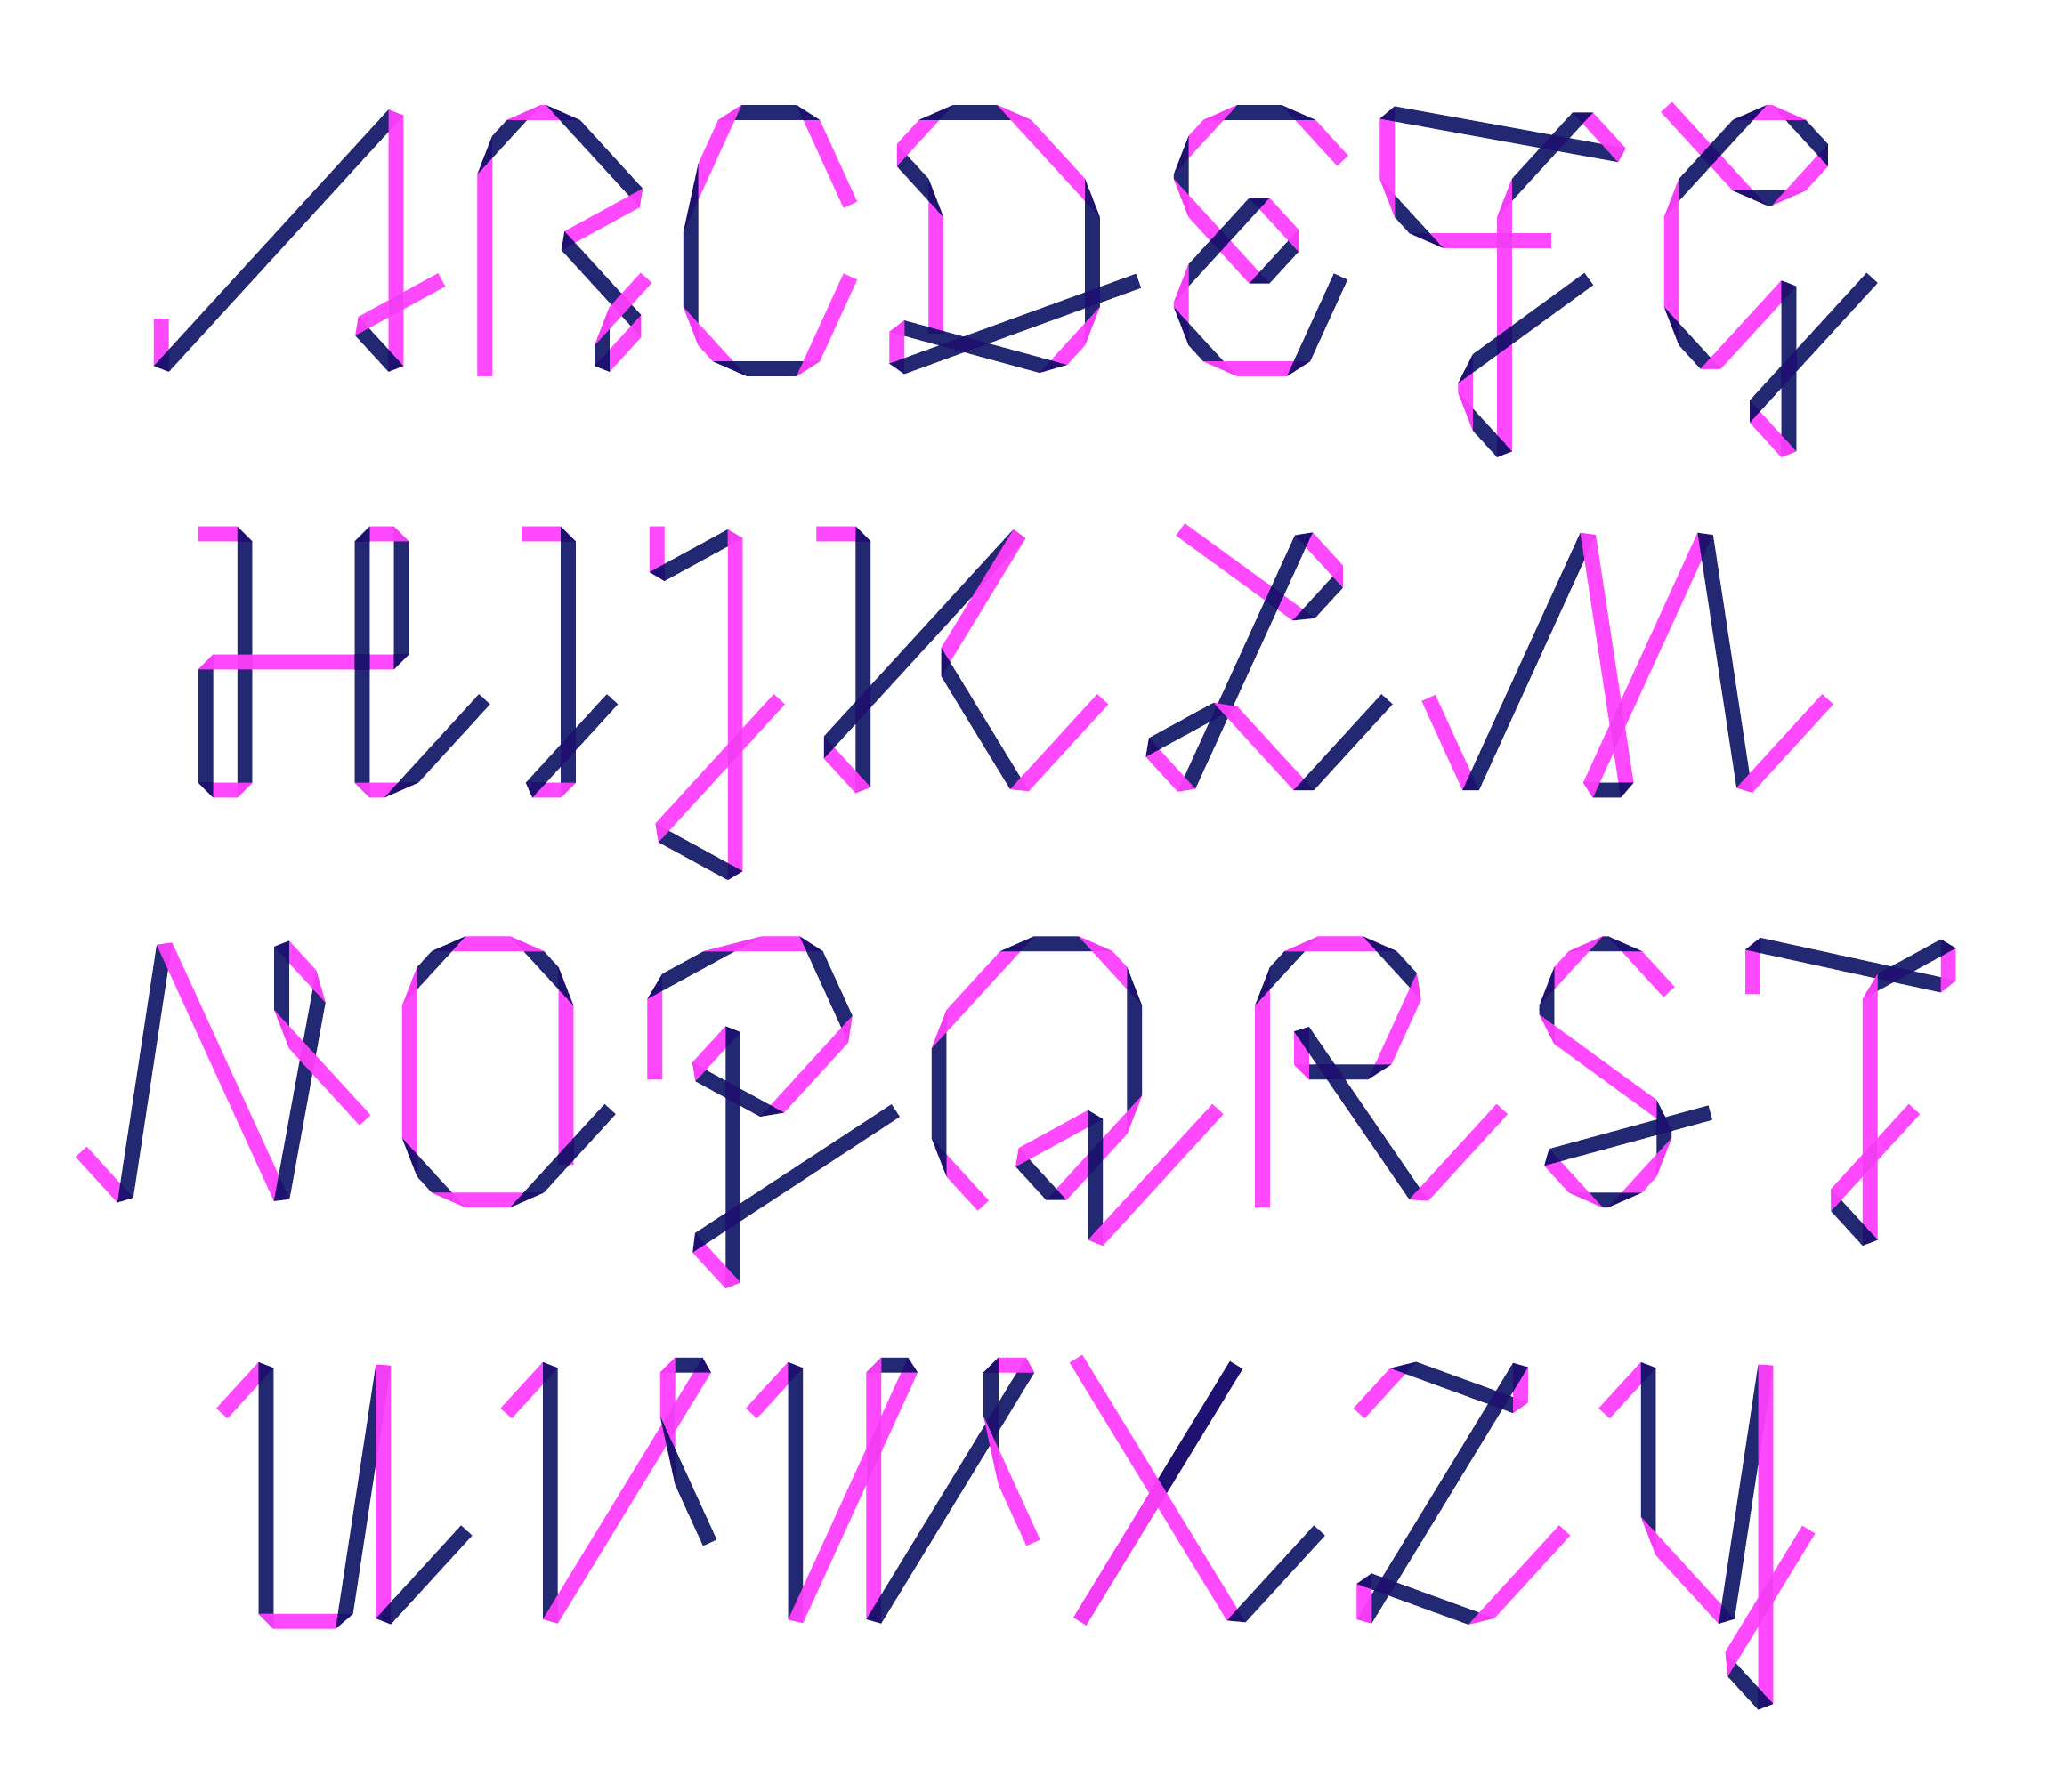 Uppercase set in one of the foldfonts.